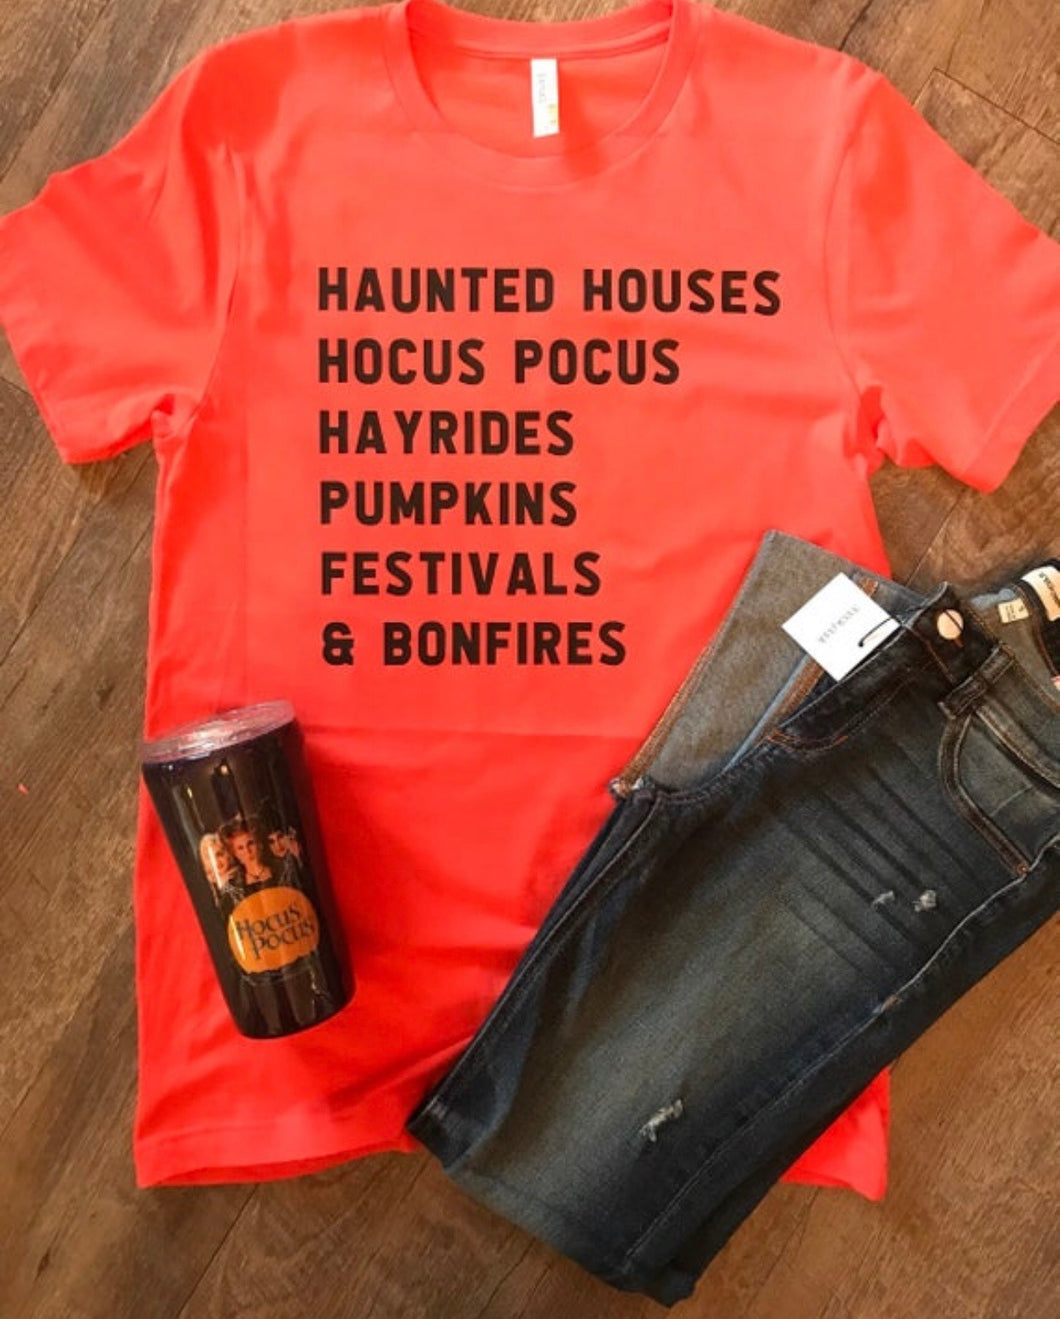 Haunted houses Hocus Pocus hayrides pumpkins festivals and bonfires halloween list graphic tee for fall! - Mavictoria Designs Hot Press Express